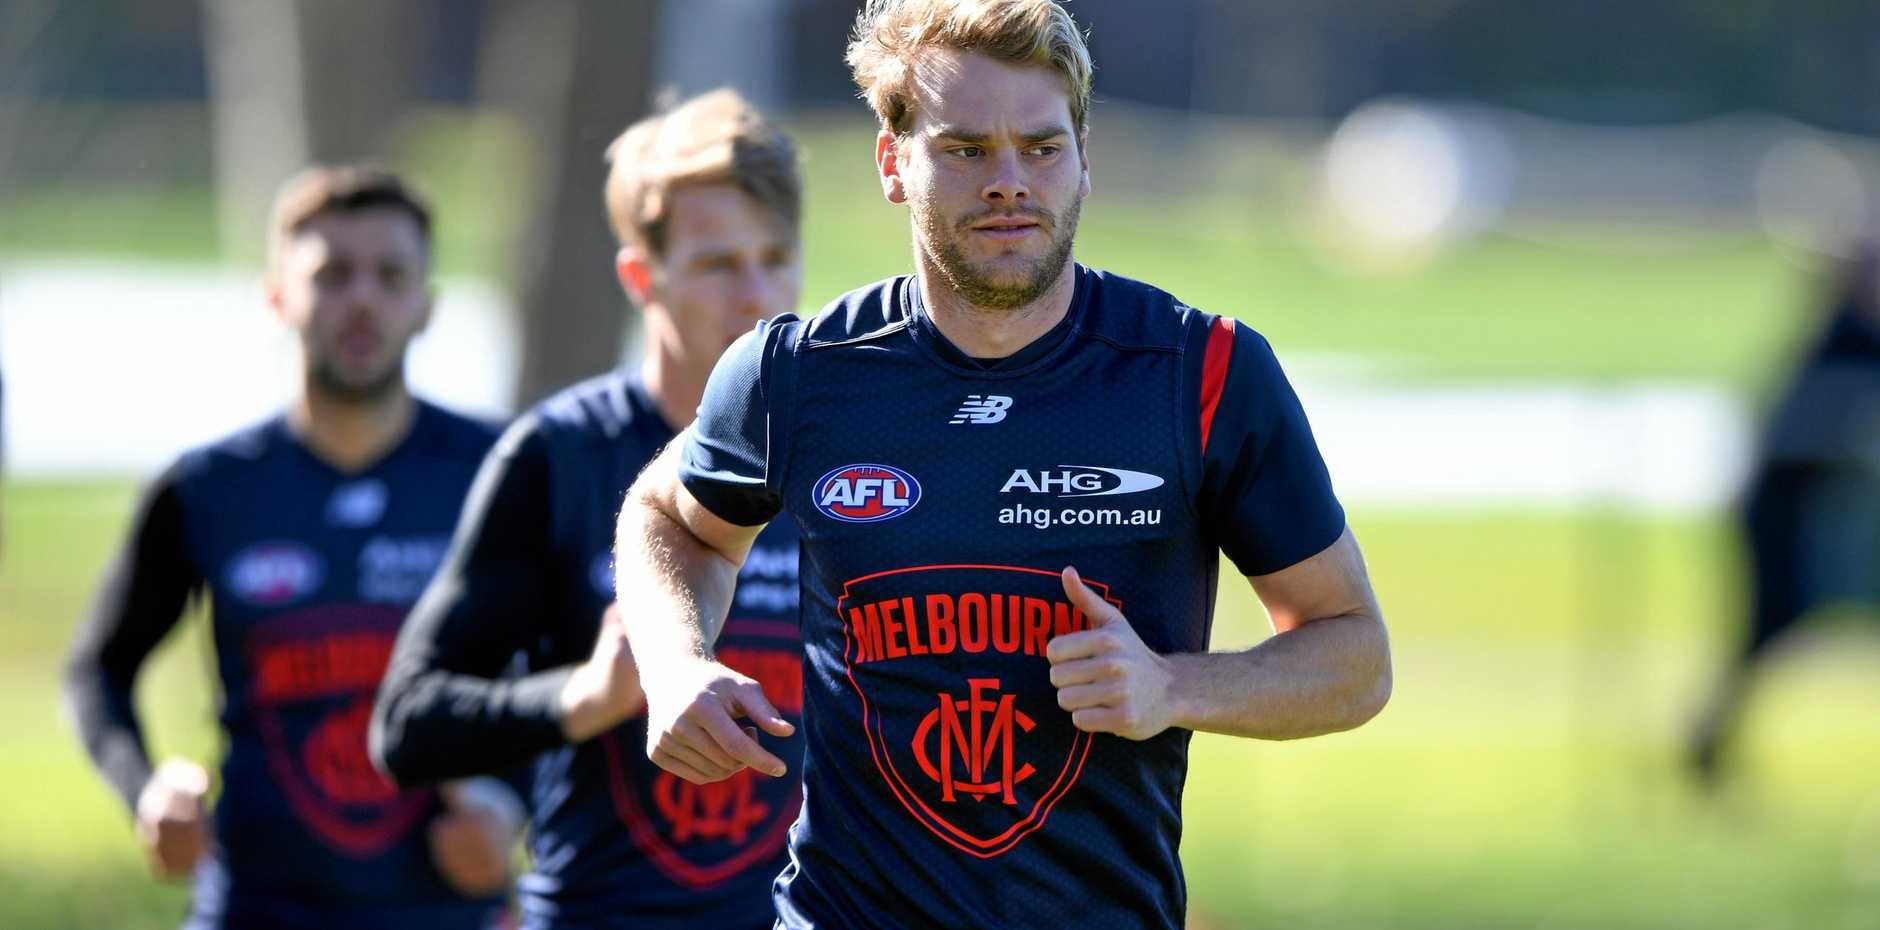 Jack Watts was shown round Geelong on Tuesday.